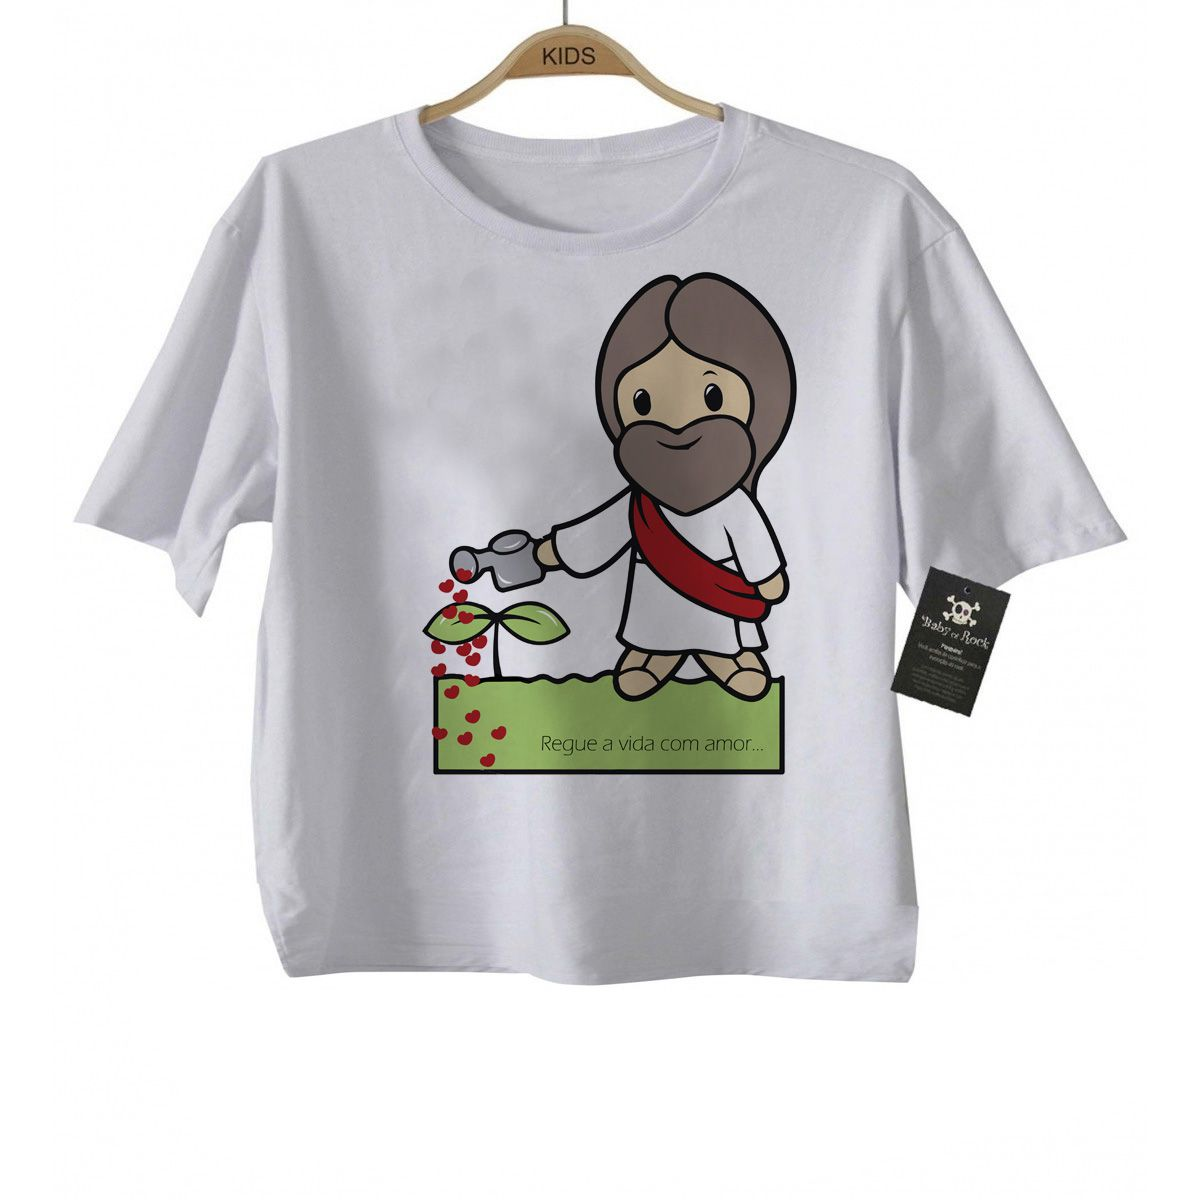 Camiseta  Bebe Católico Regue a Vida  - White  - Baby Monster S/A